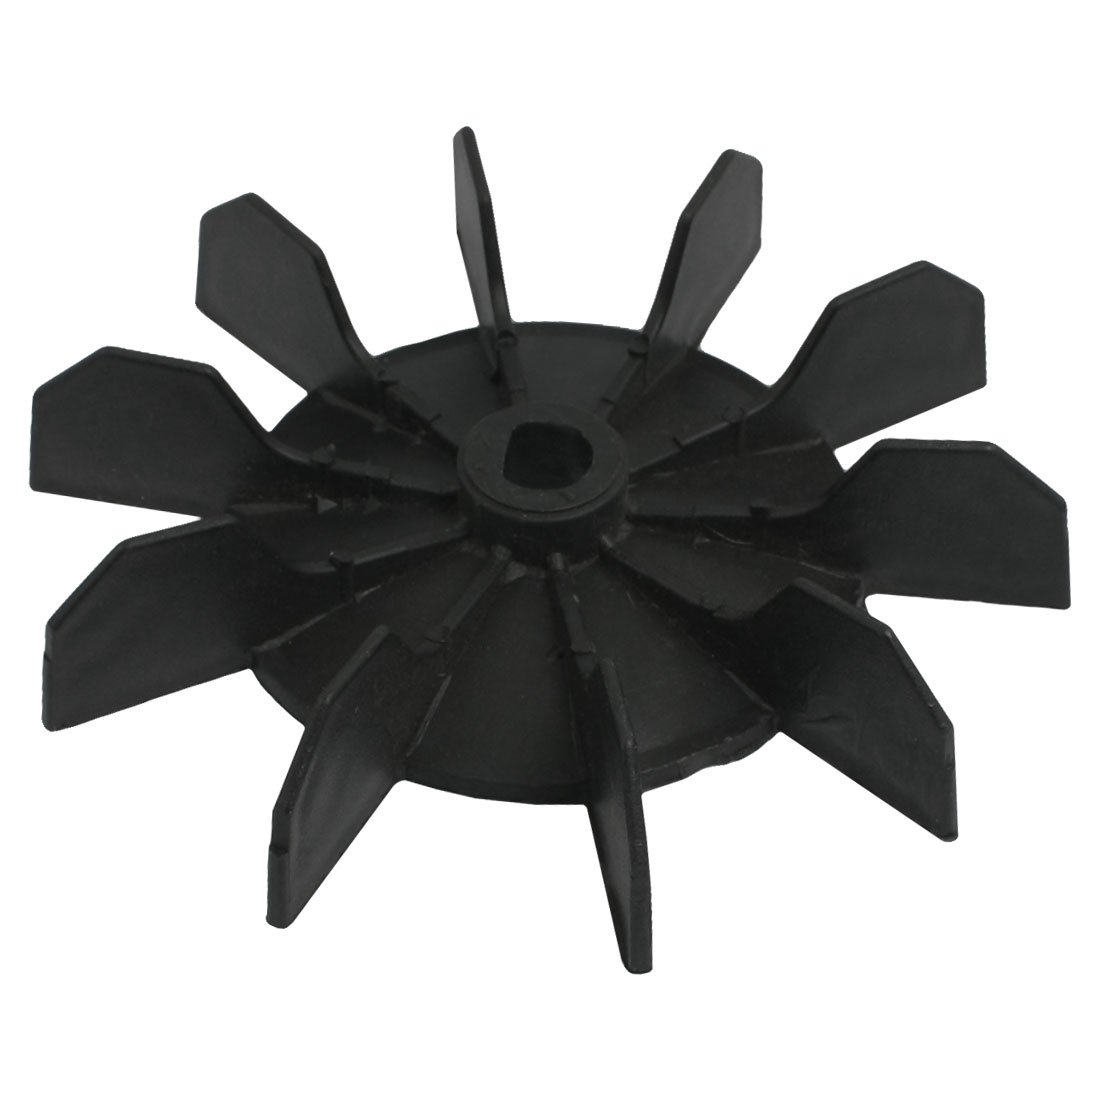 EAS-Replacement 0.5 Inner Bore 10 Impeller Air Compressor Motor Fan Blade BlackEAS-Replacement 0.5 Inner Bore 10 Impeller Air Compressor Motor Fan Blade Black